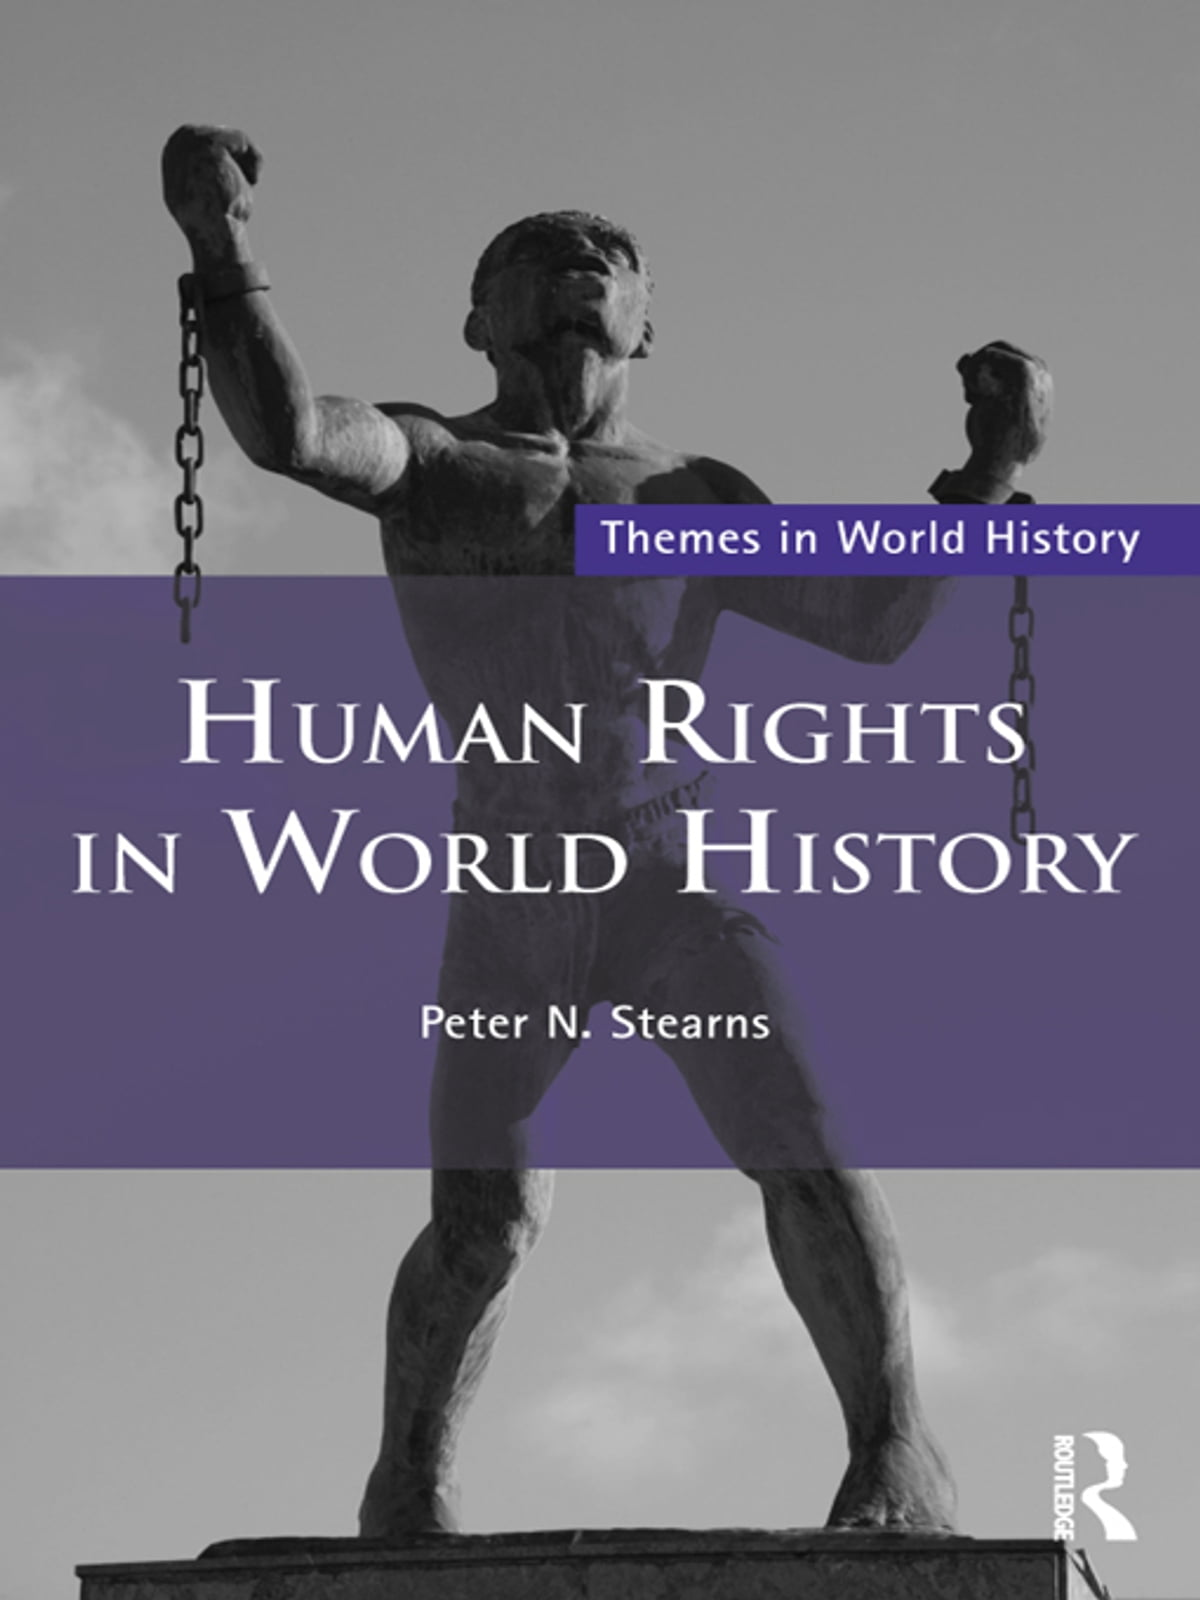 Sports in World History (Themes in World History)